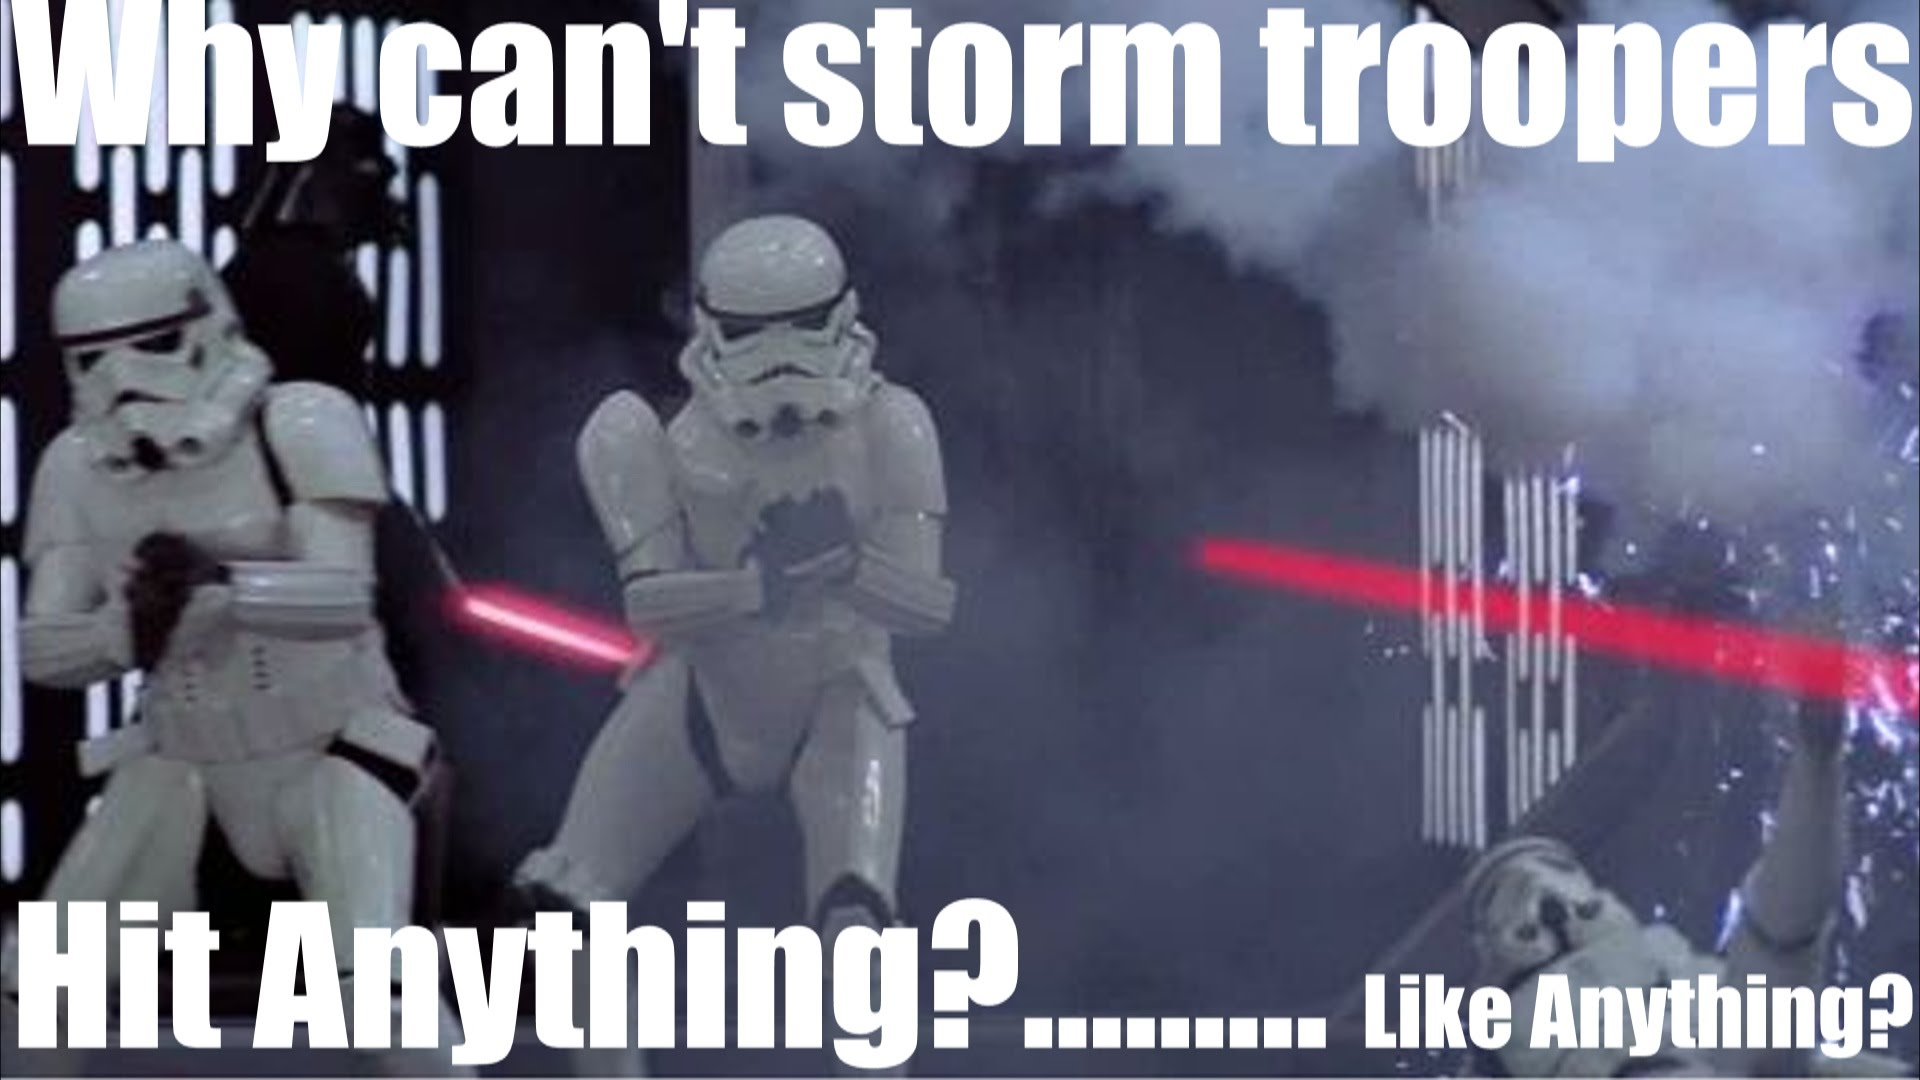 Why Can't storm troopers hit anything? Maybe because they don't aim!